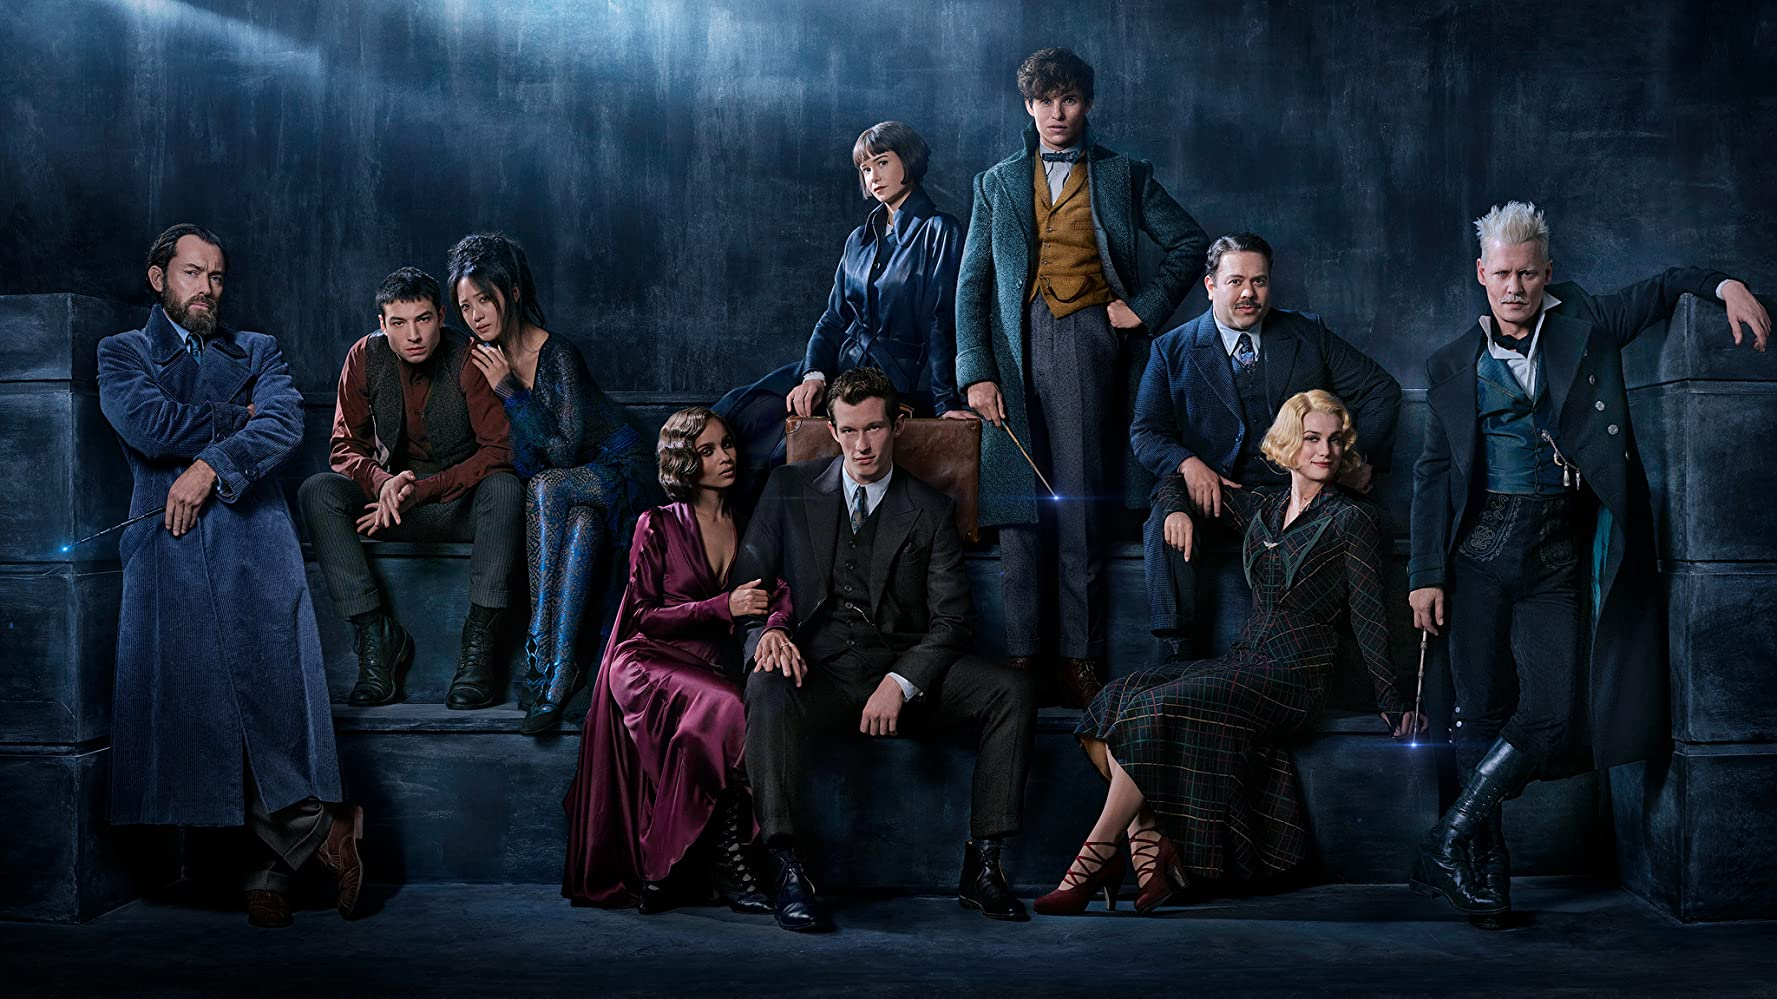 Johnny Depp, Jude Law, Dan Fogler, Alison Sudol, Eddie Redmayne, Katherine Waterston, Claudia Kim, Zoë Kravitz, Ezra Miller, and Callum Turner in Fantastic Beasts: The Crimes of Grindelwald (2018)